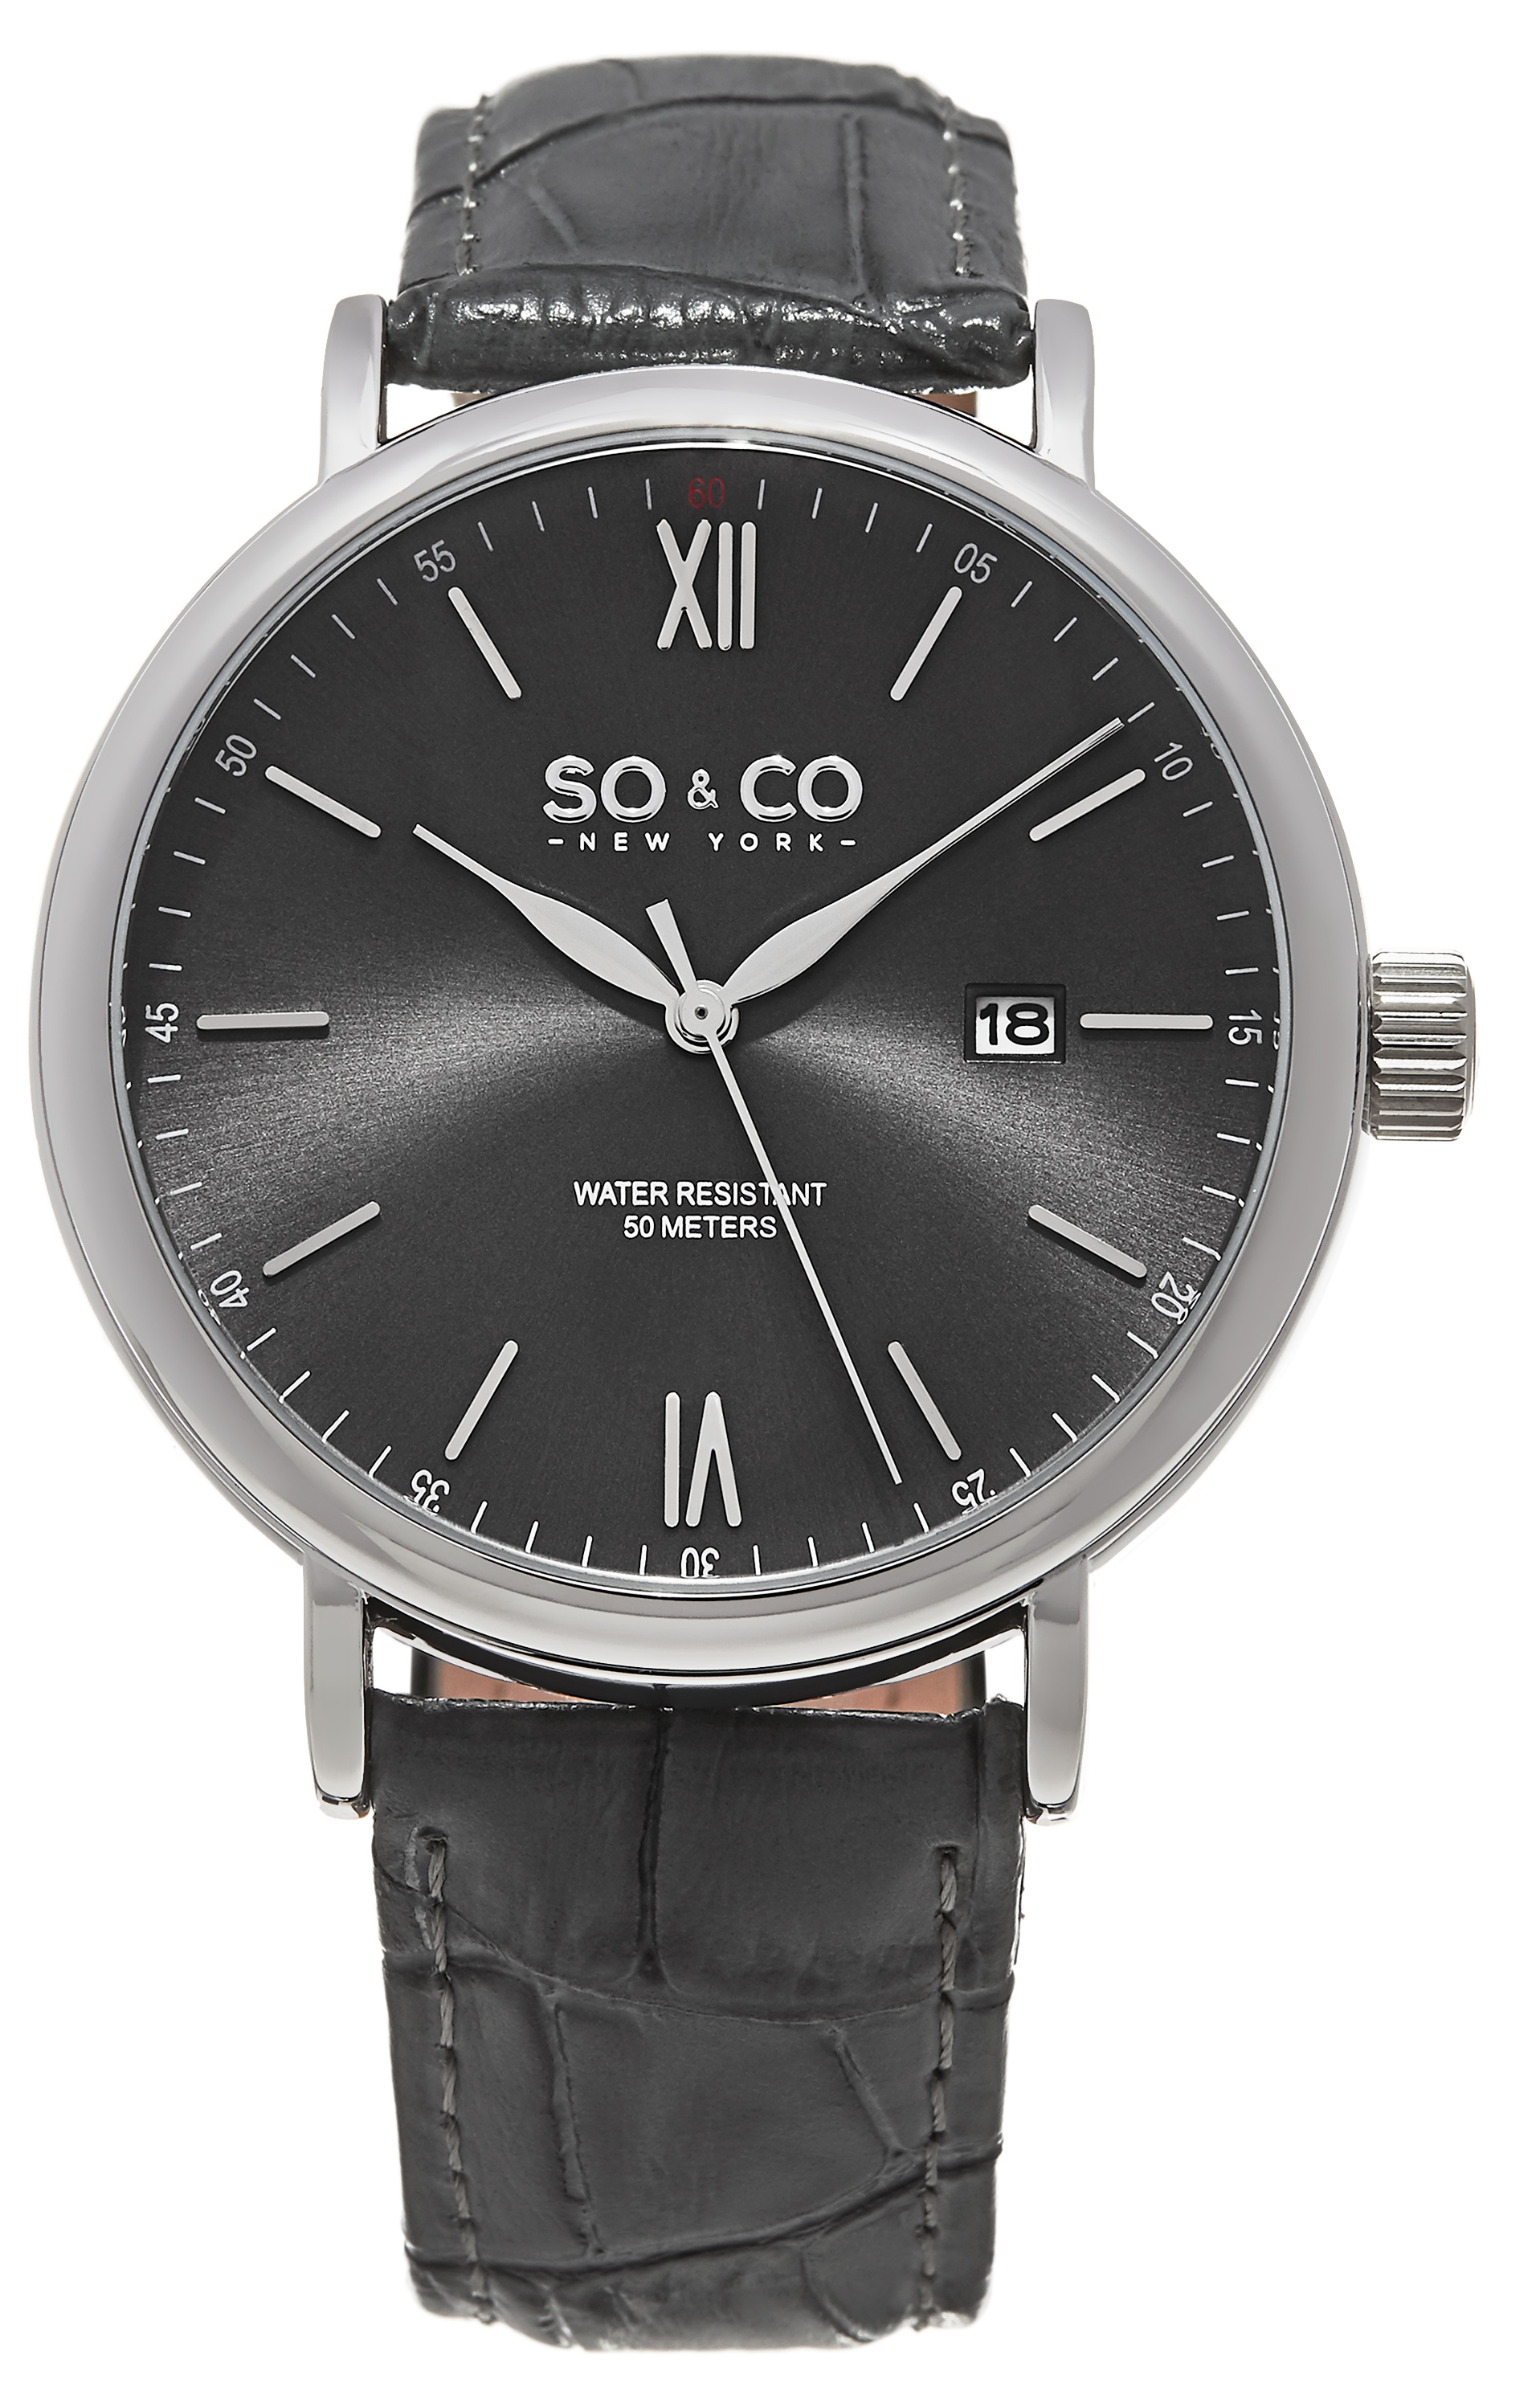 So & Co New York Madison Herreklokke 5266L.2 Grå/Lær Ø42 mm - So & Co New York